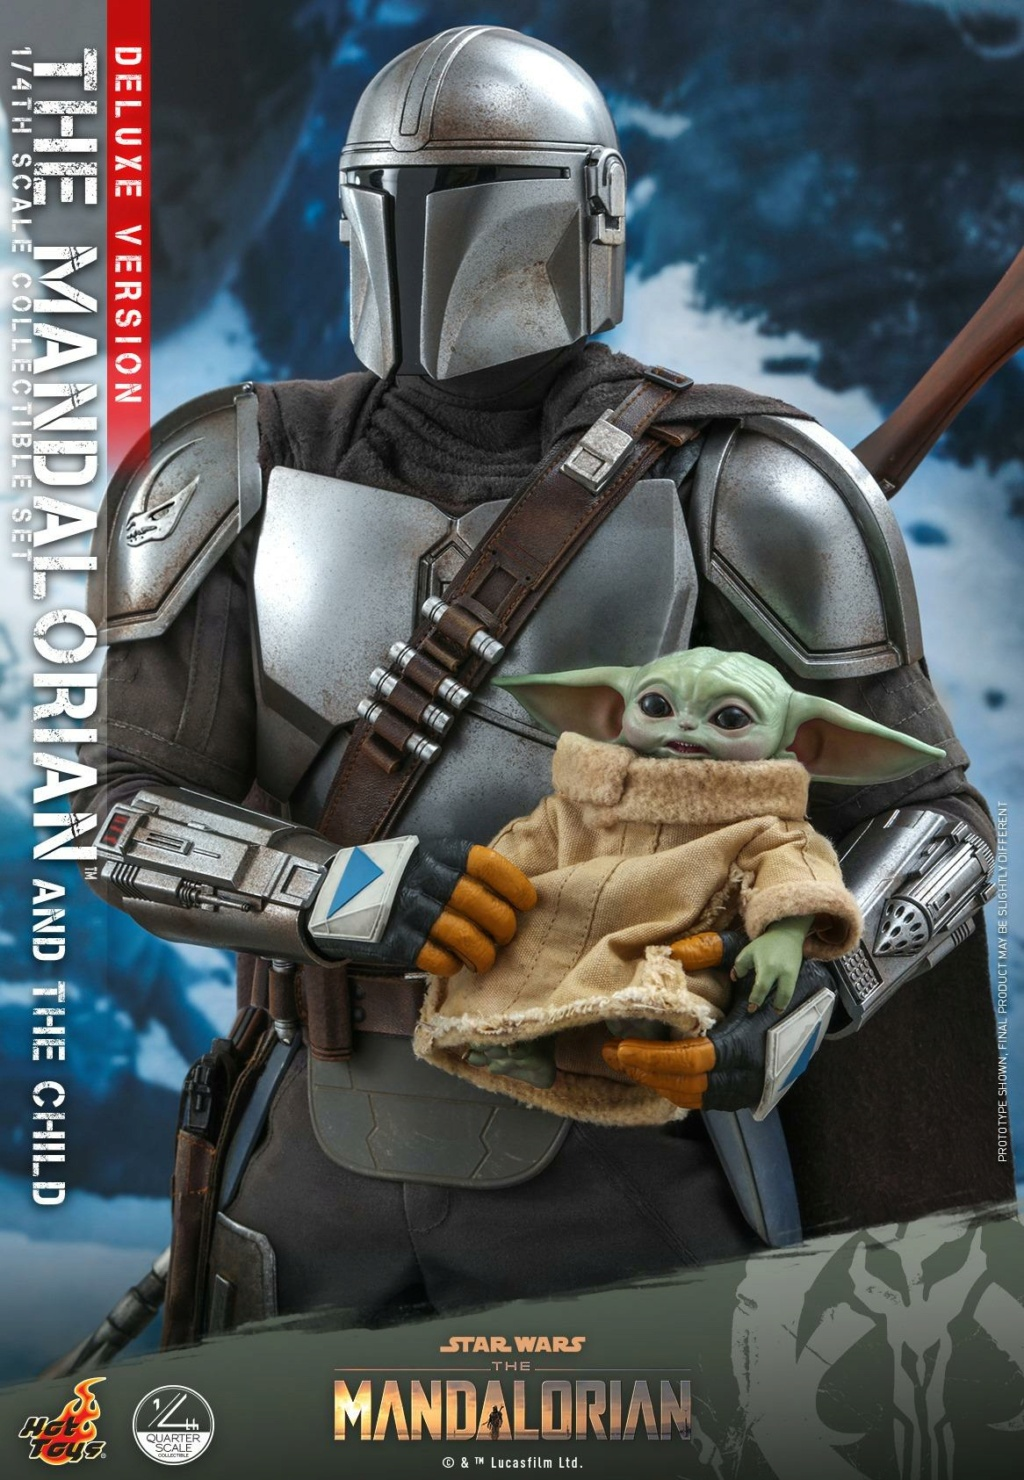 The Mandalorian & The Child Set (Deluxe) 1/4th - Hot Toys 0253